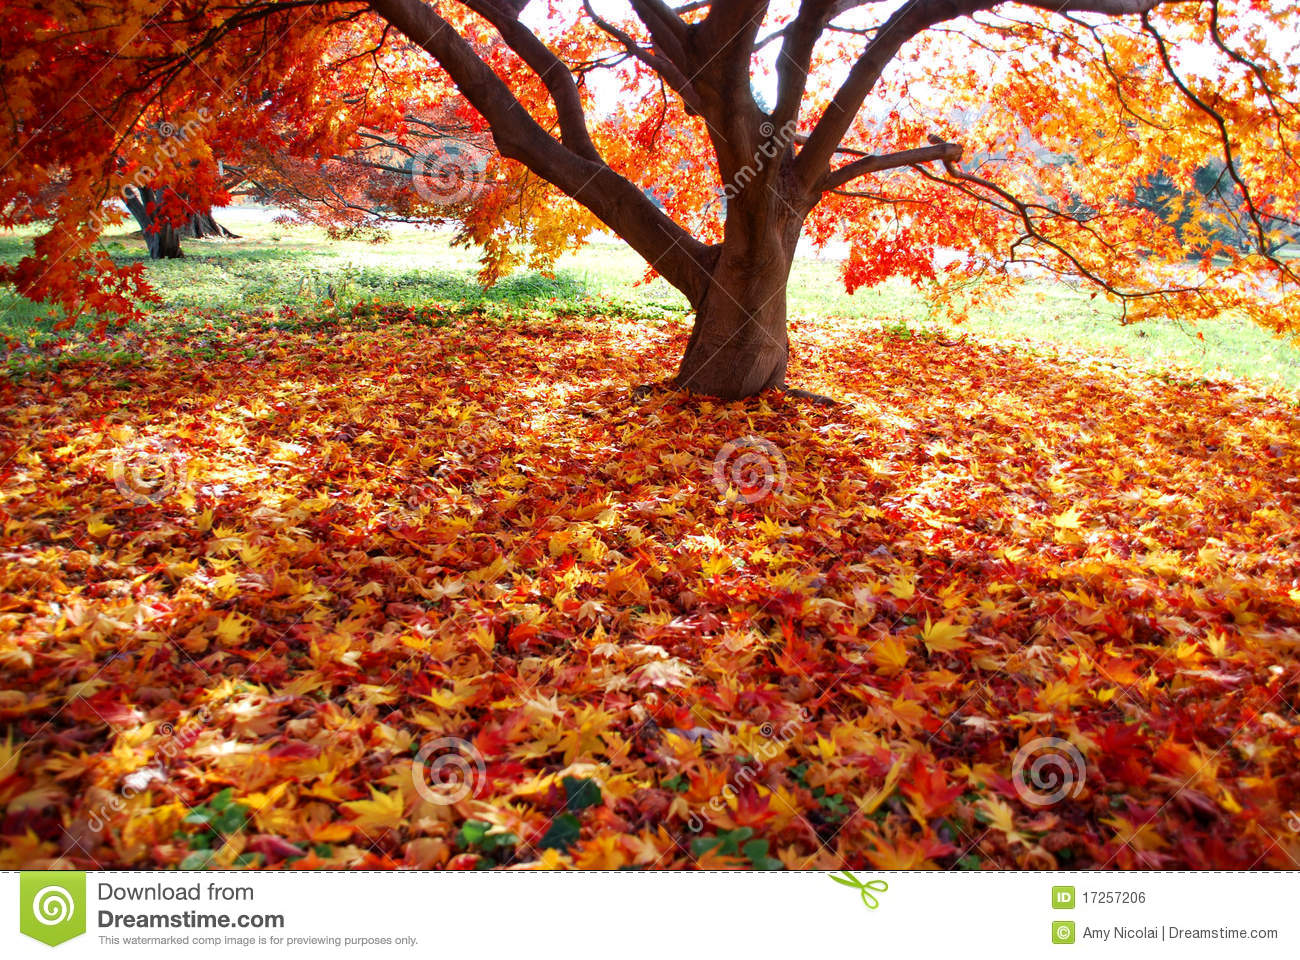 Colorful carpet of fallen leaves